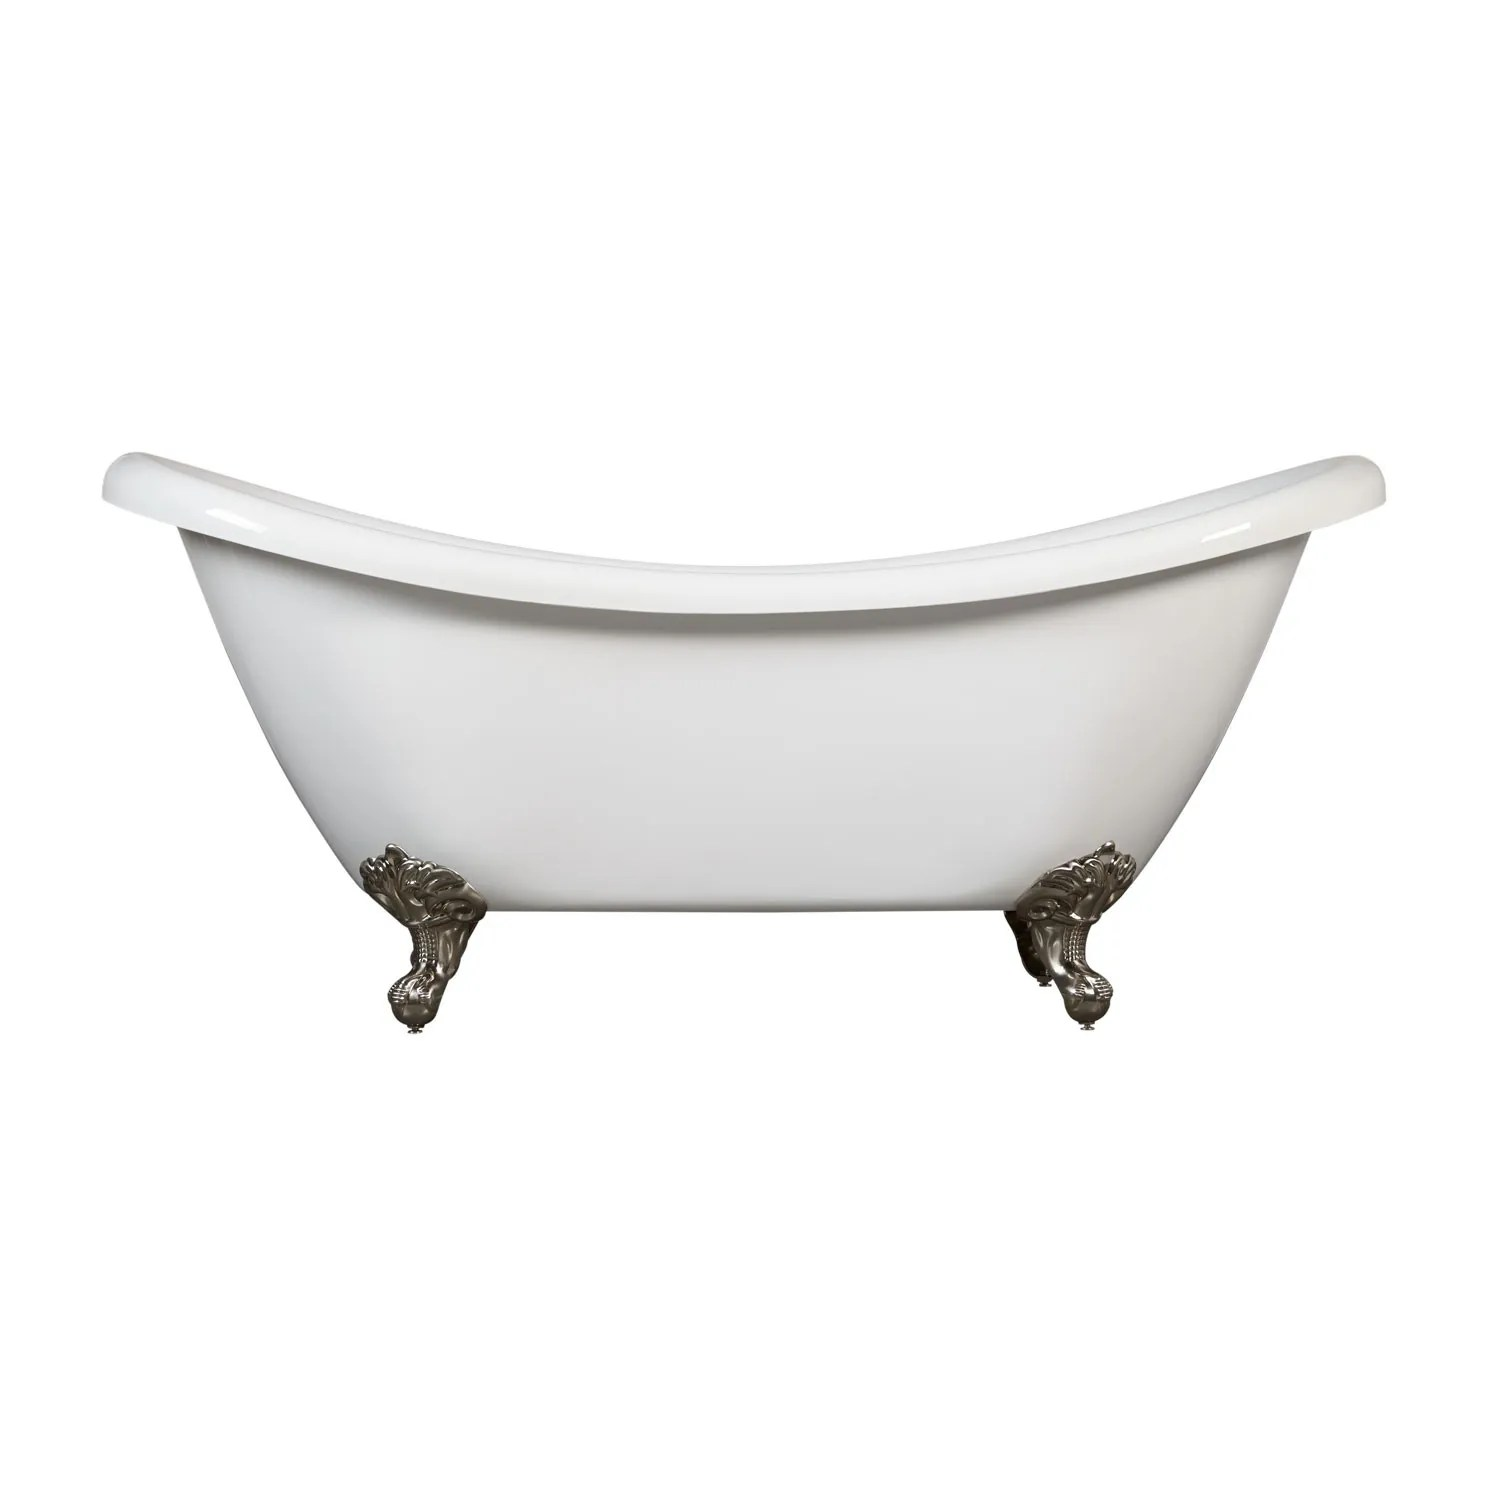 69 Candace Acrylic Clawfoot Tub Imperial Feet Bathroom